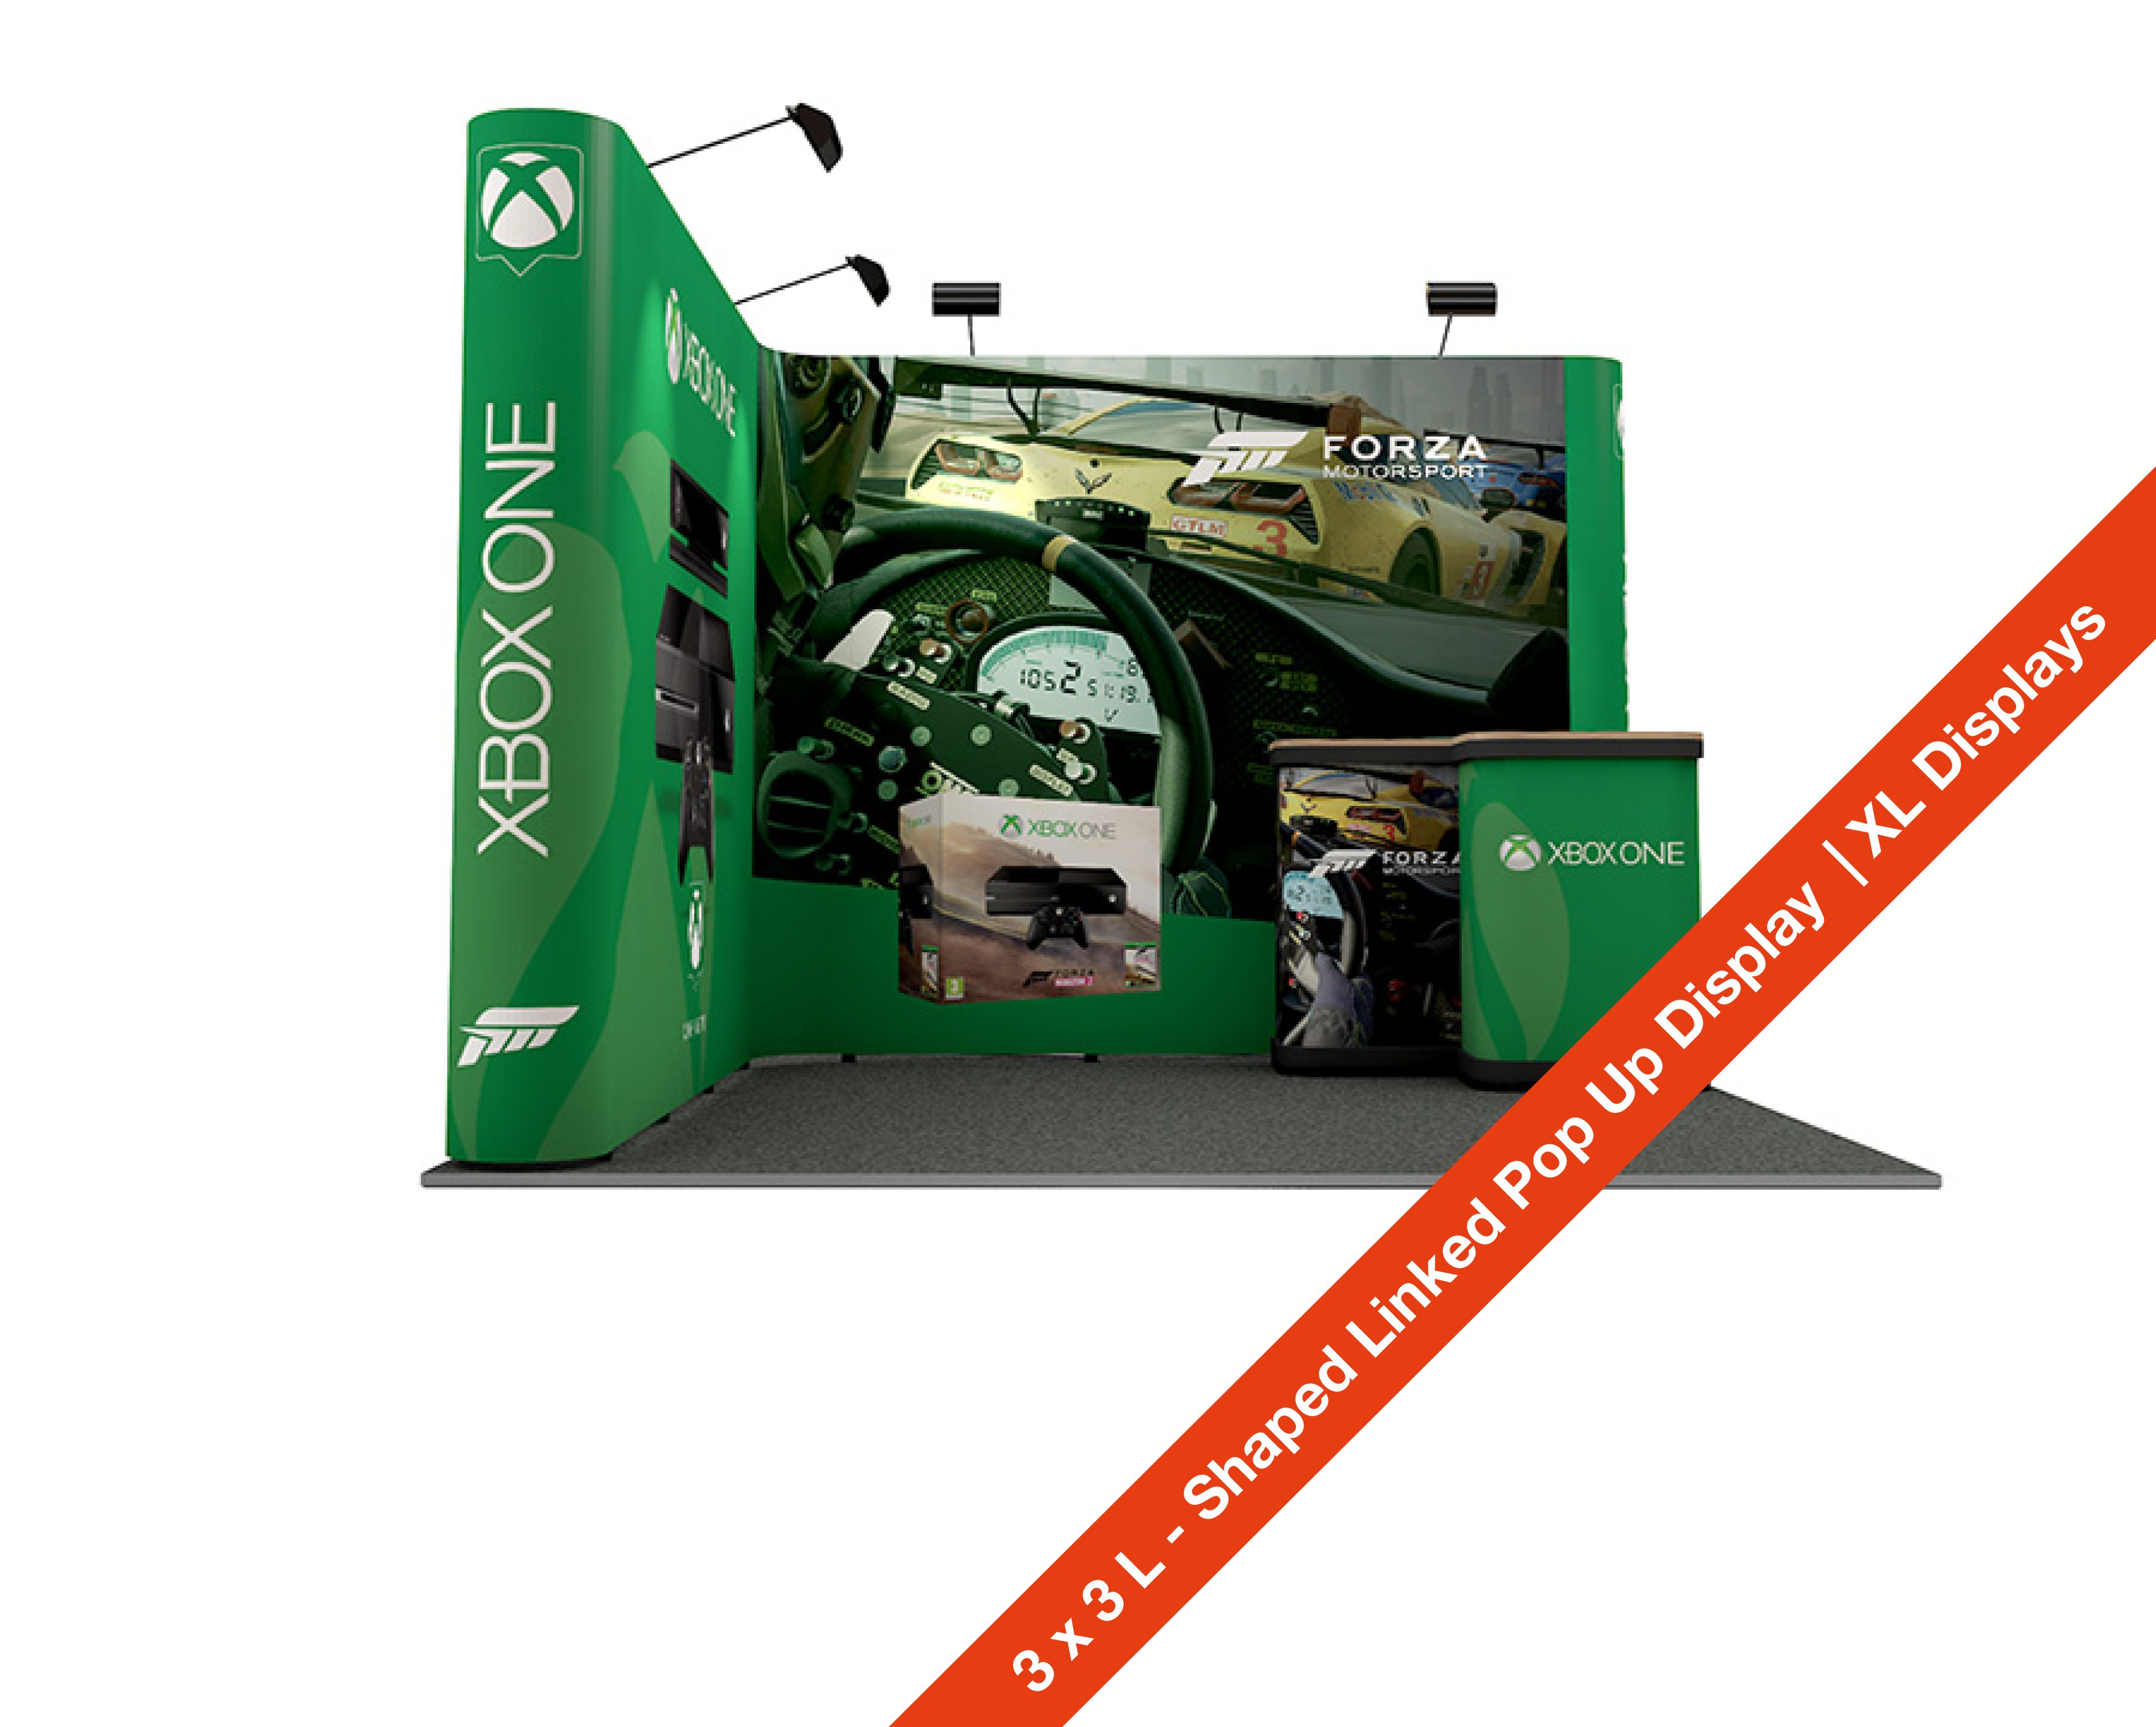 Expo Exhibition Stands Xbox One : M m exhibition stand l shape linked pop up stands linked pop